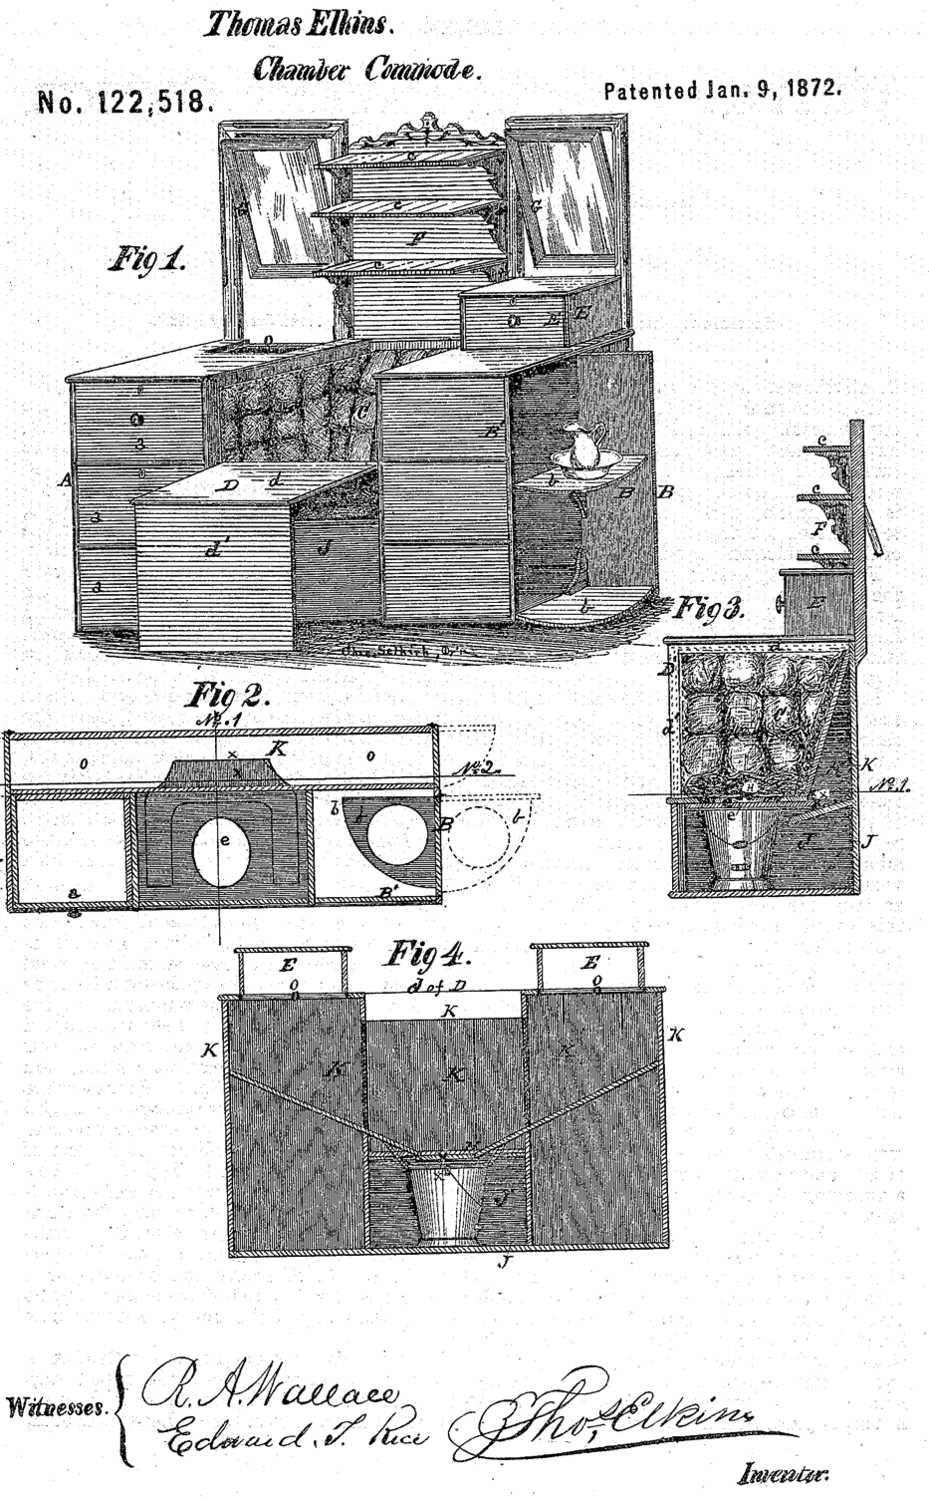 thomas elkins chamber commode patent image